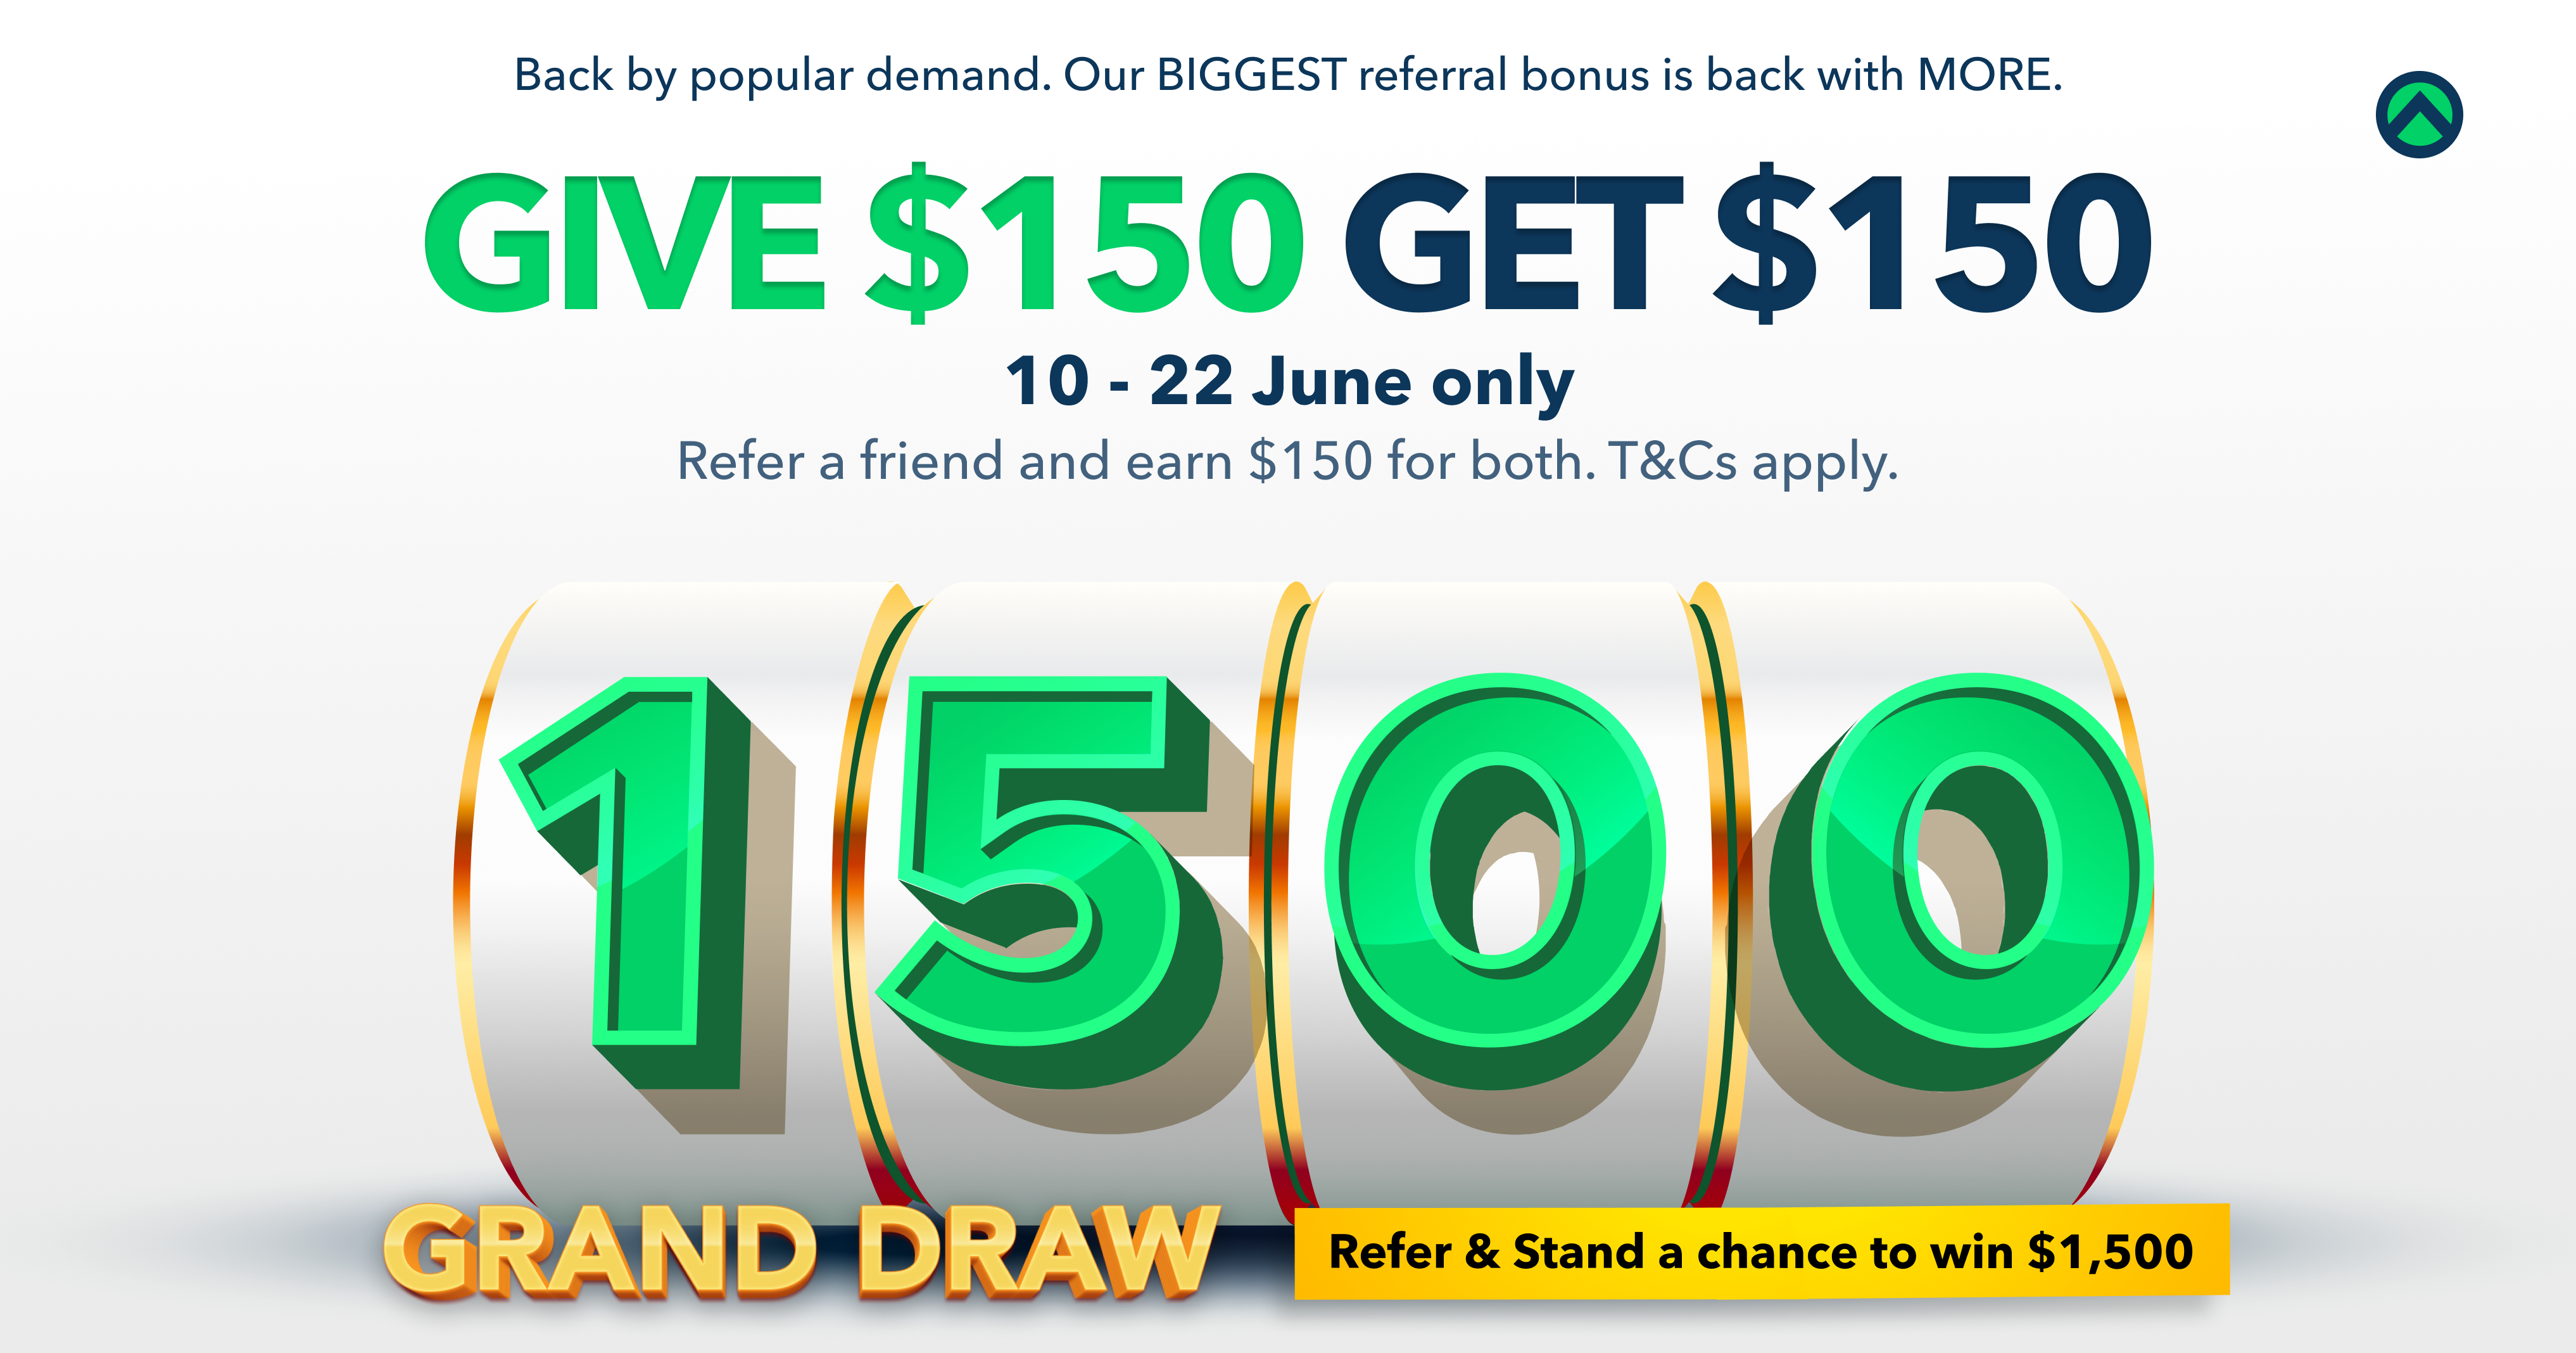 Our BIGGEST referral bonus is back, with MORE!